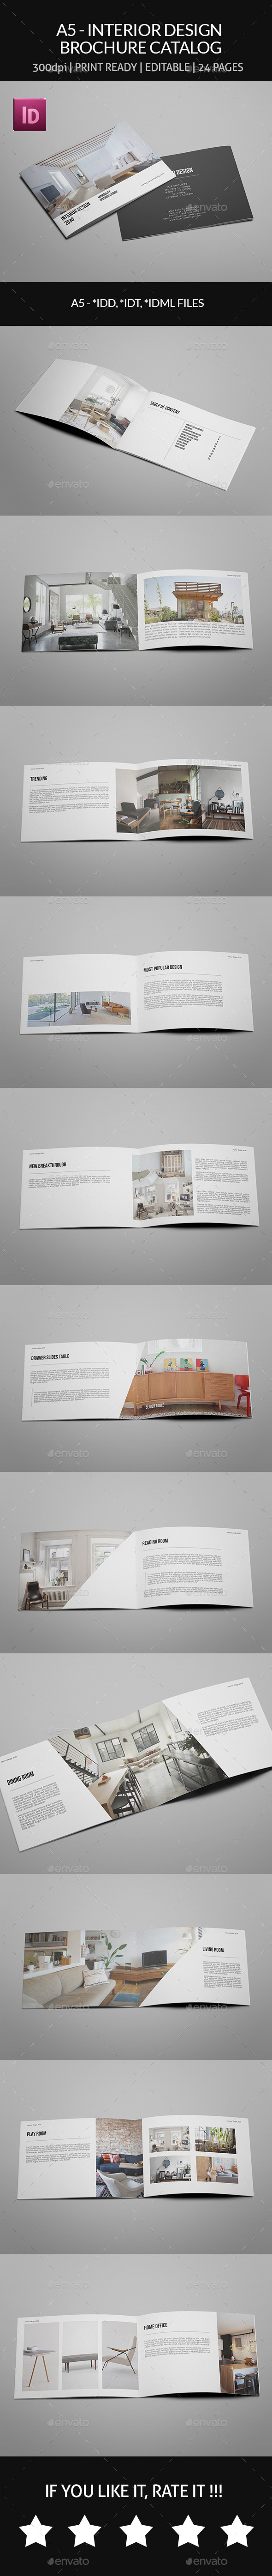 GraphicRiver A5 Interior Design Brochure Catalog 8987934